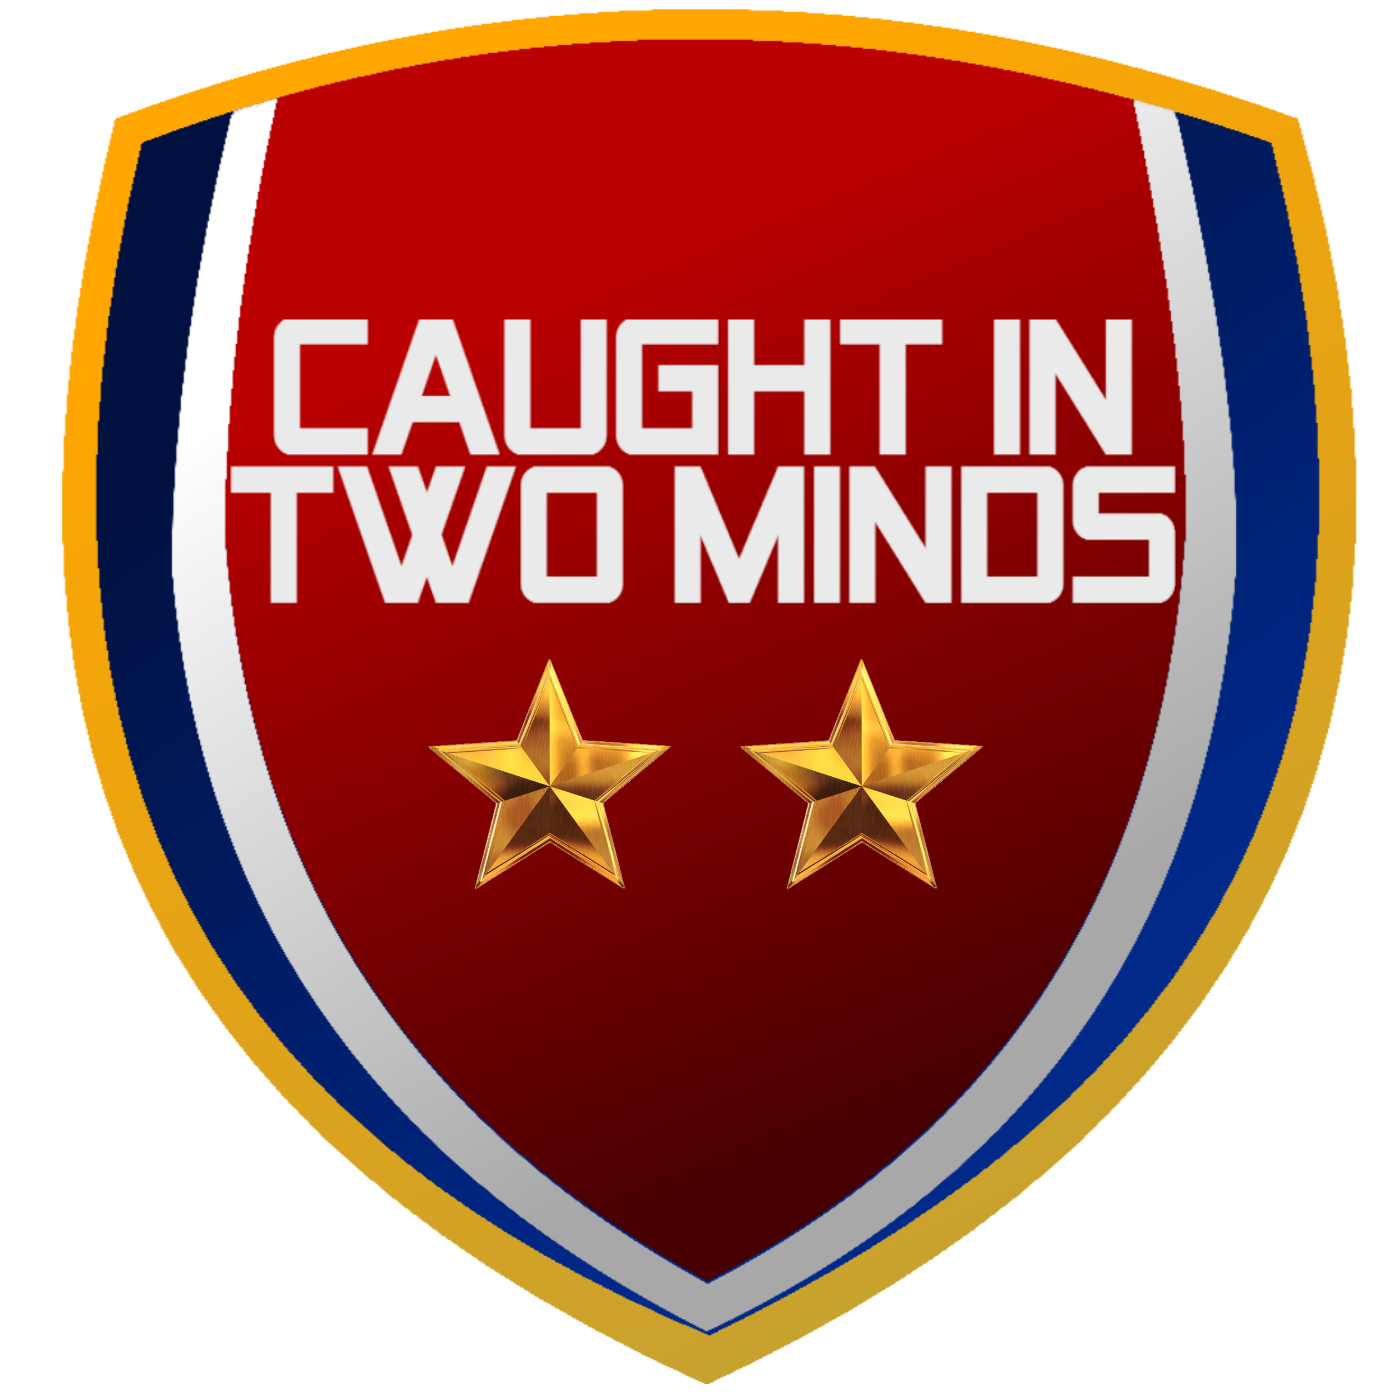 #26 - Caught In Two Minds